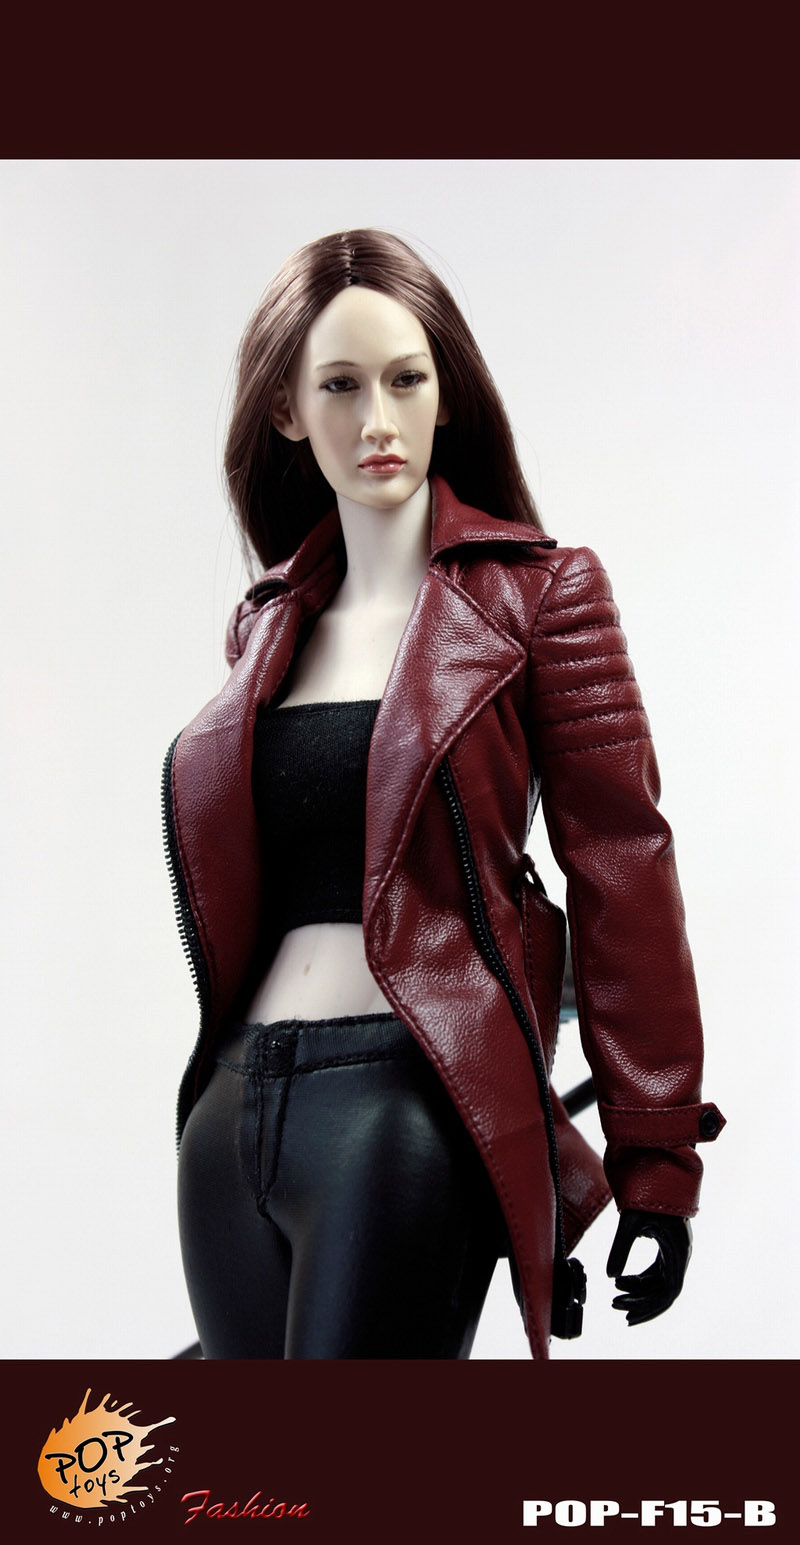 POPTOYS F15-B RED (The Nikita female agent leather suit